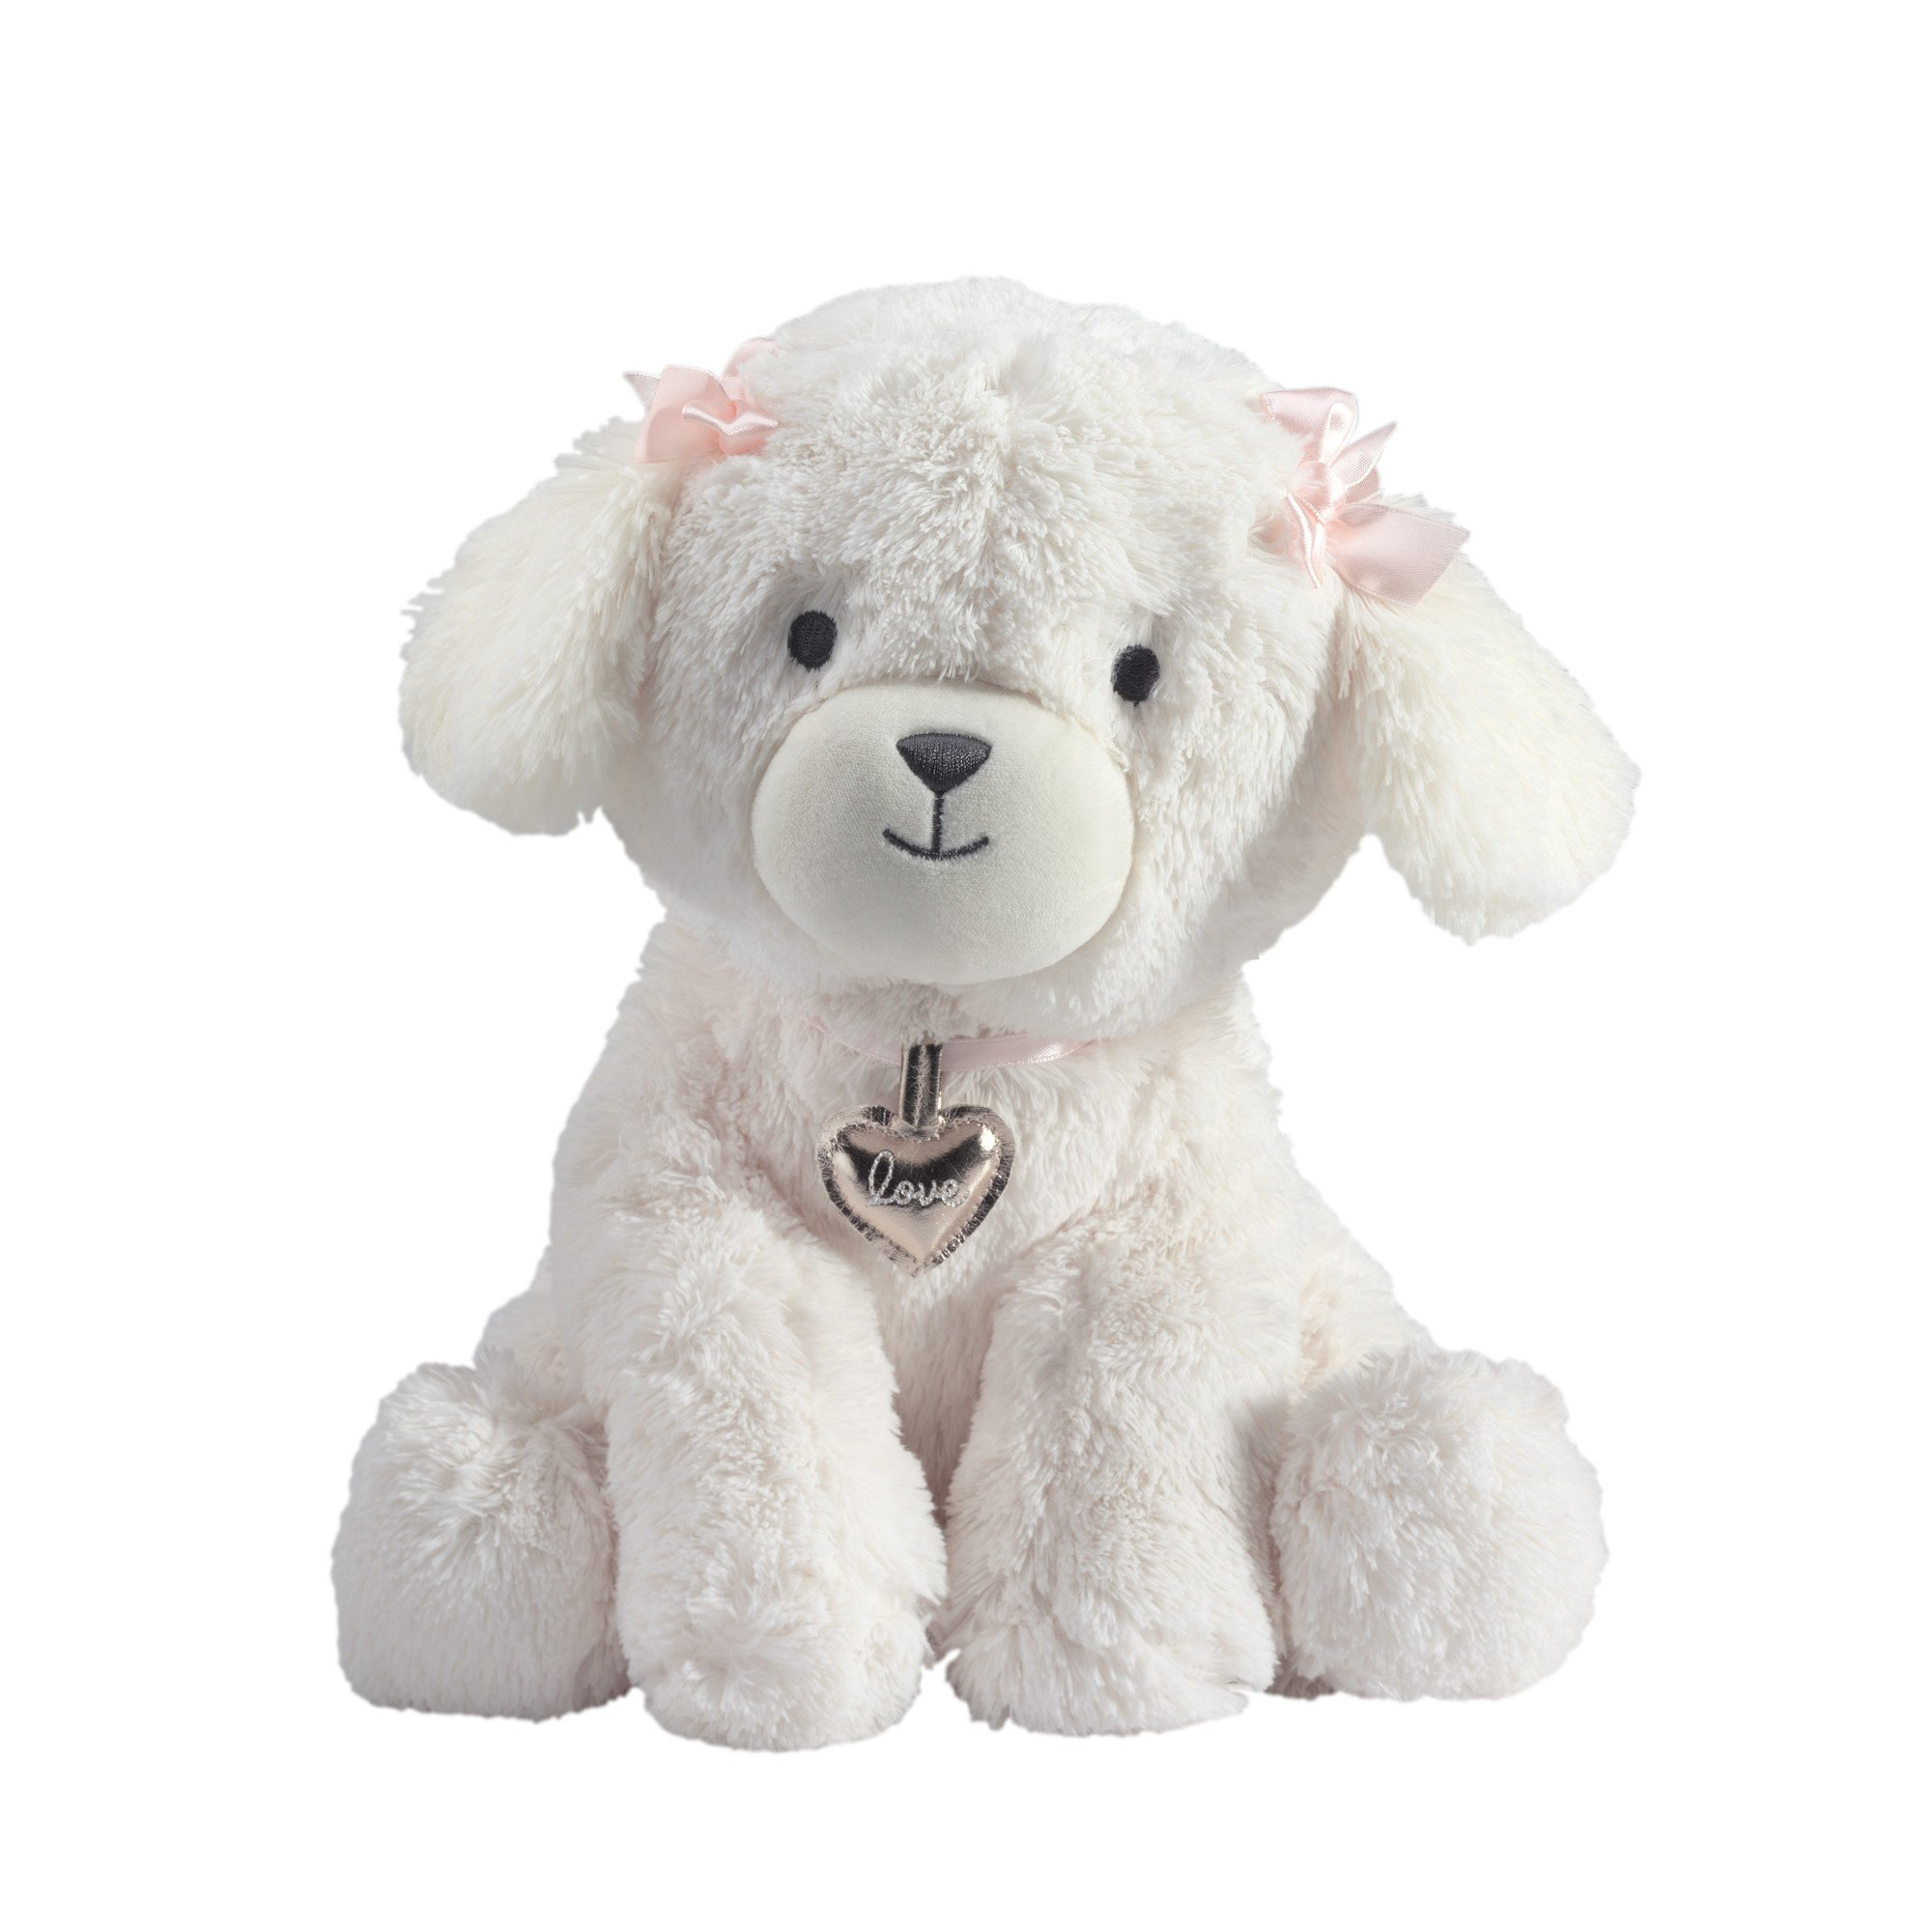 Lambs & Ivy Baby Love White Plush Puppy Stuffed Animal Dog - Annie - Pink, Gold